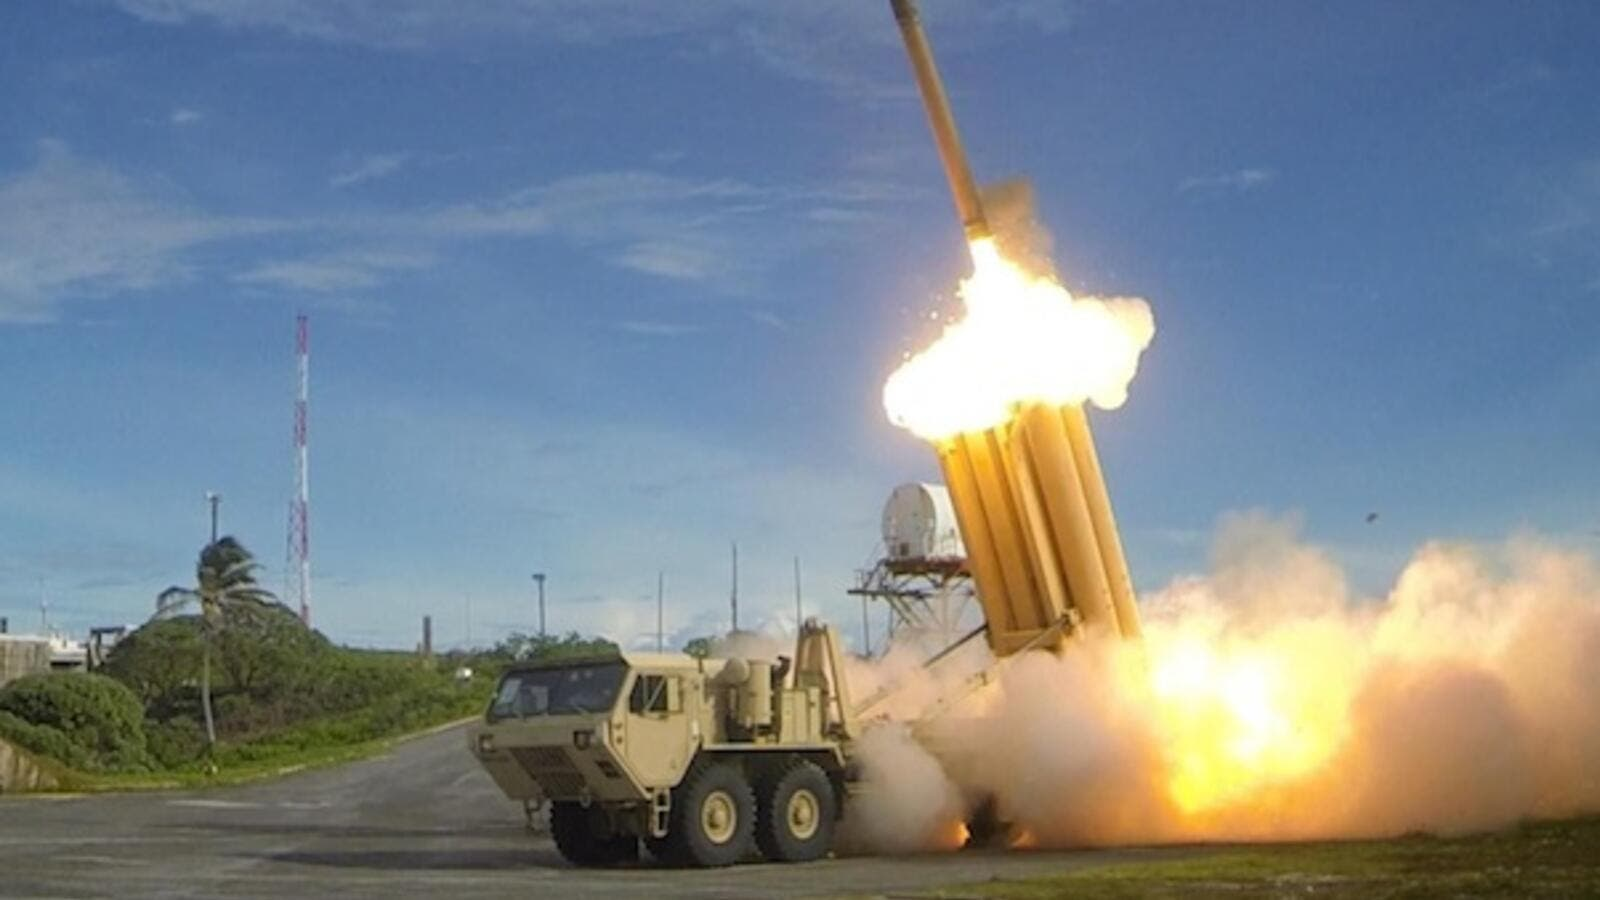 THAAD, or Terminal High Altitude Area Defense is an anti-ballistic missile system designed to shoot down ballistic missiles using kinetic energy. (Defensetalk.net)